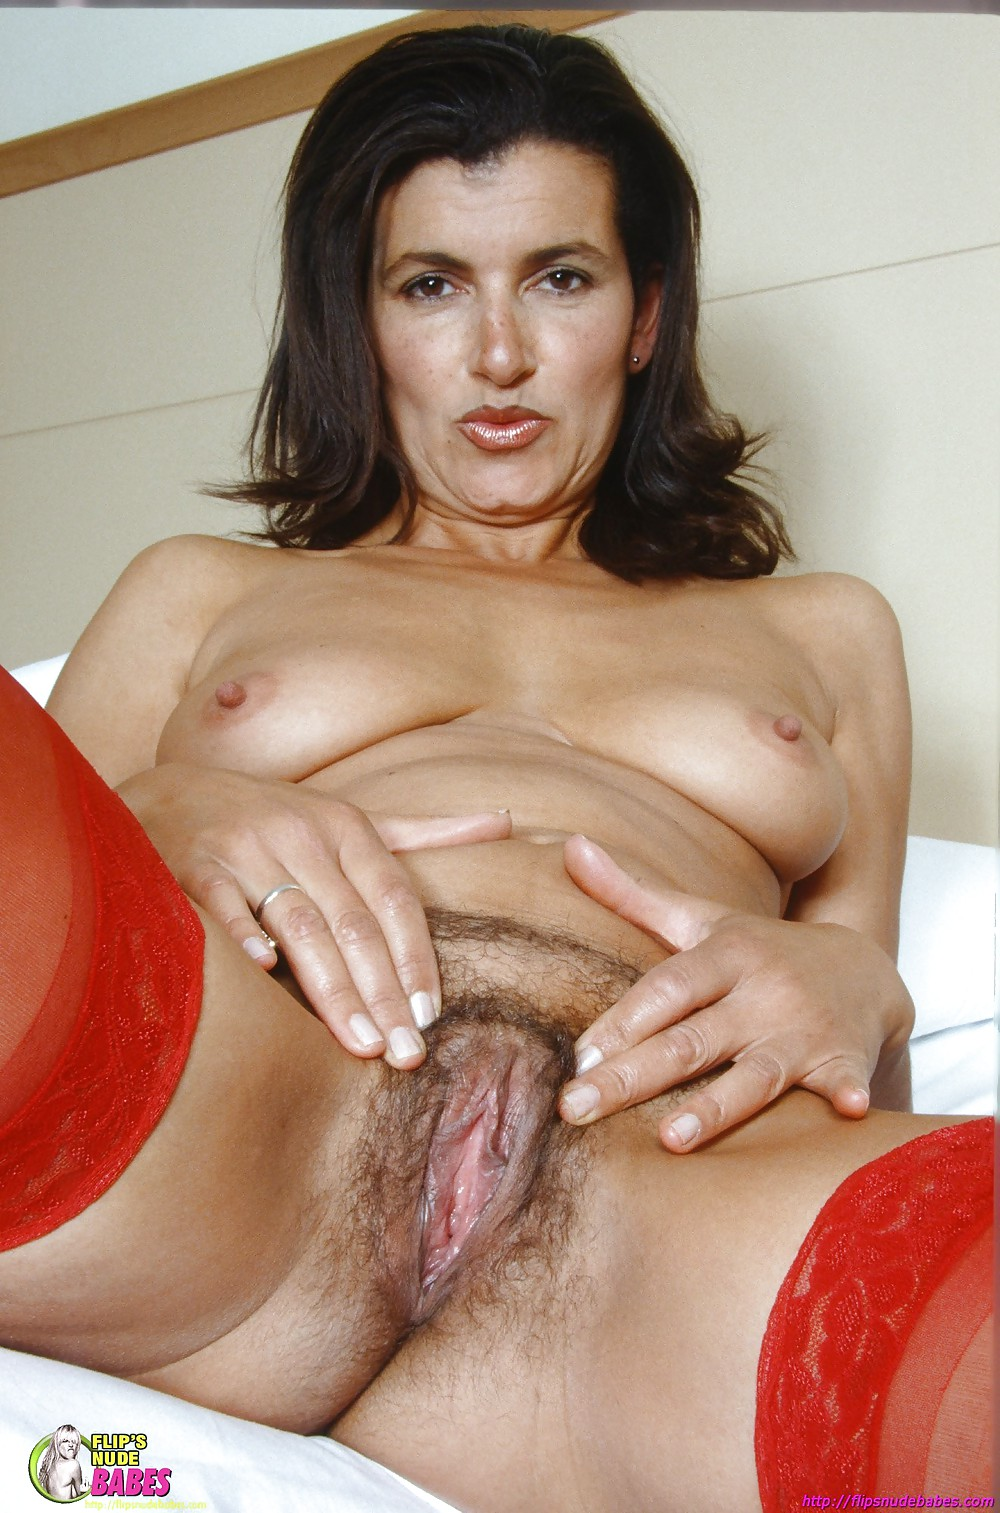 Hd mature porn pictures-1772